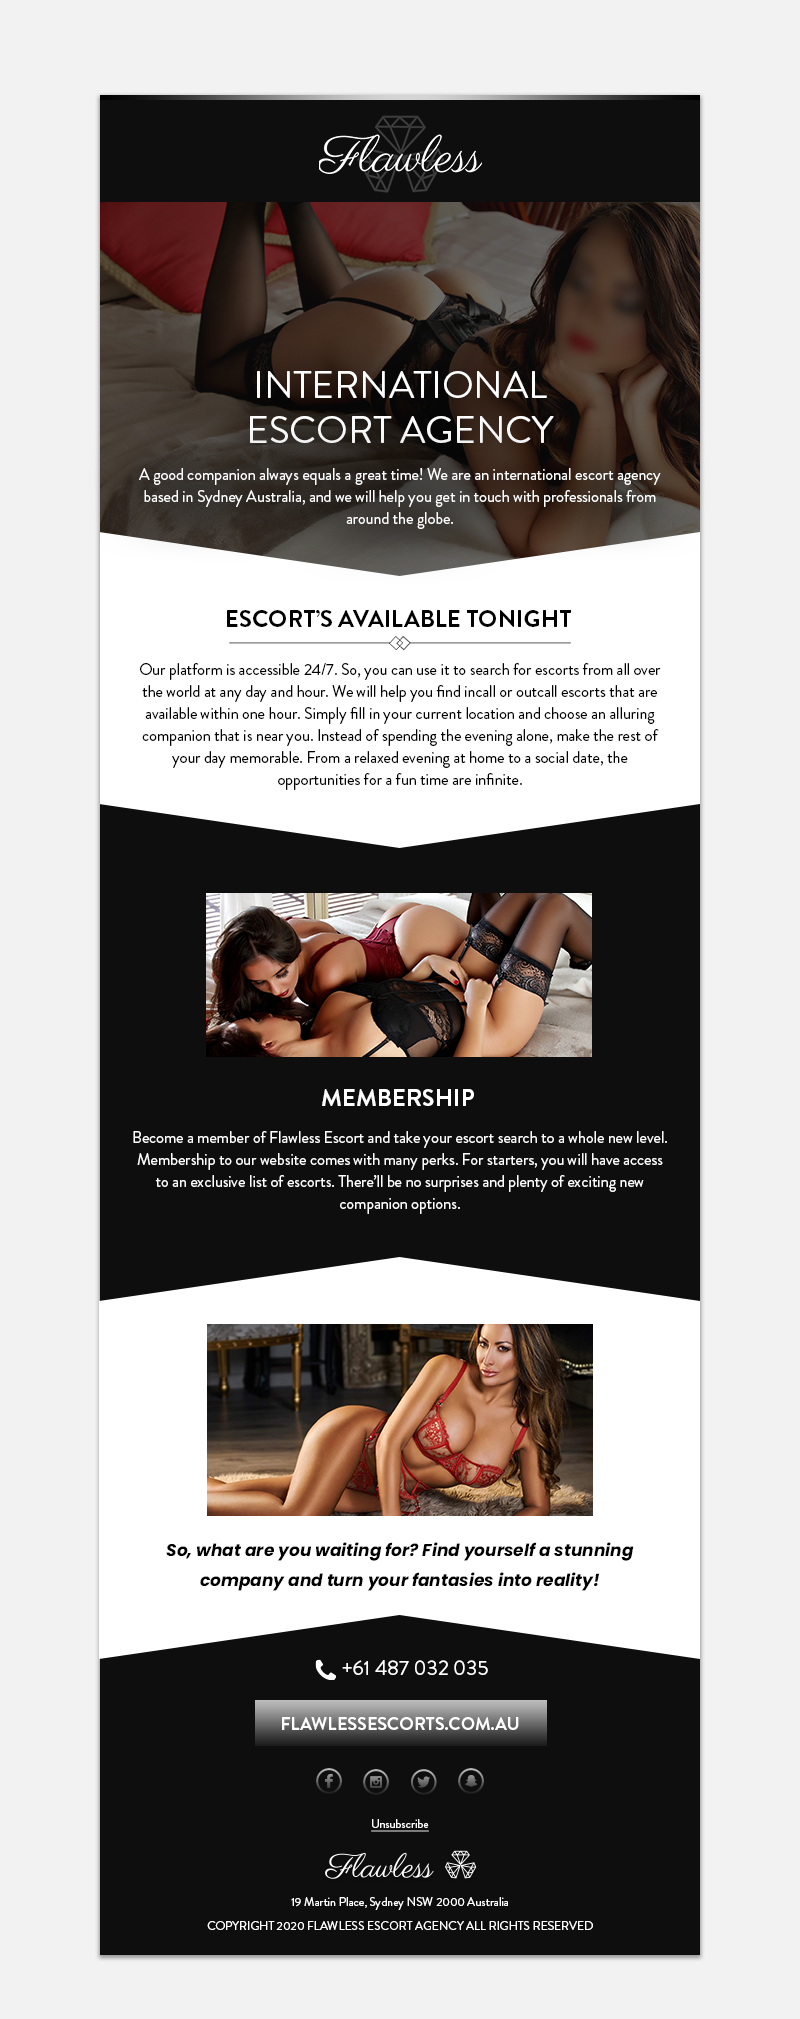 2X PSD EMAIL DESIGNS